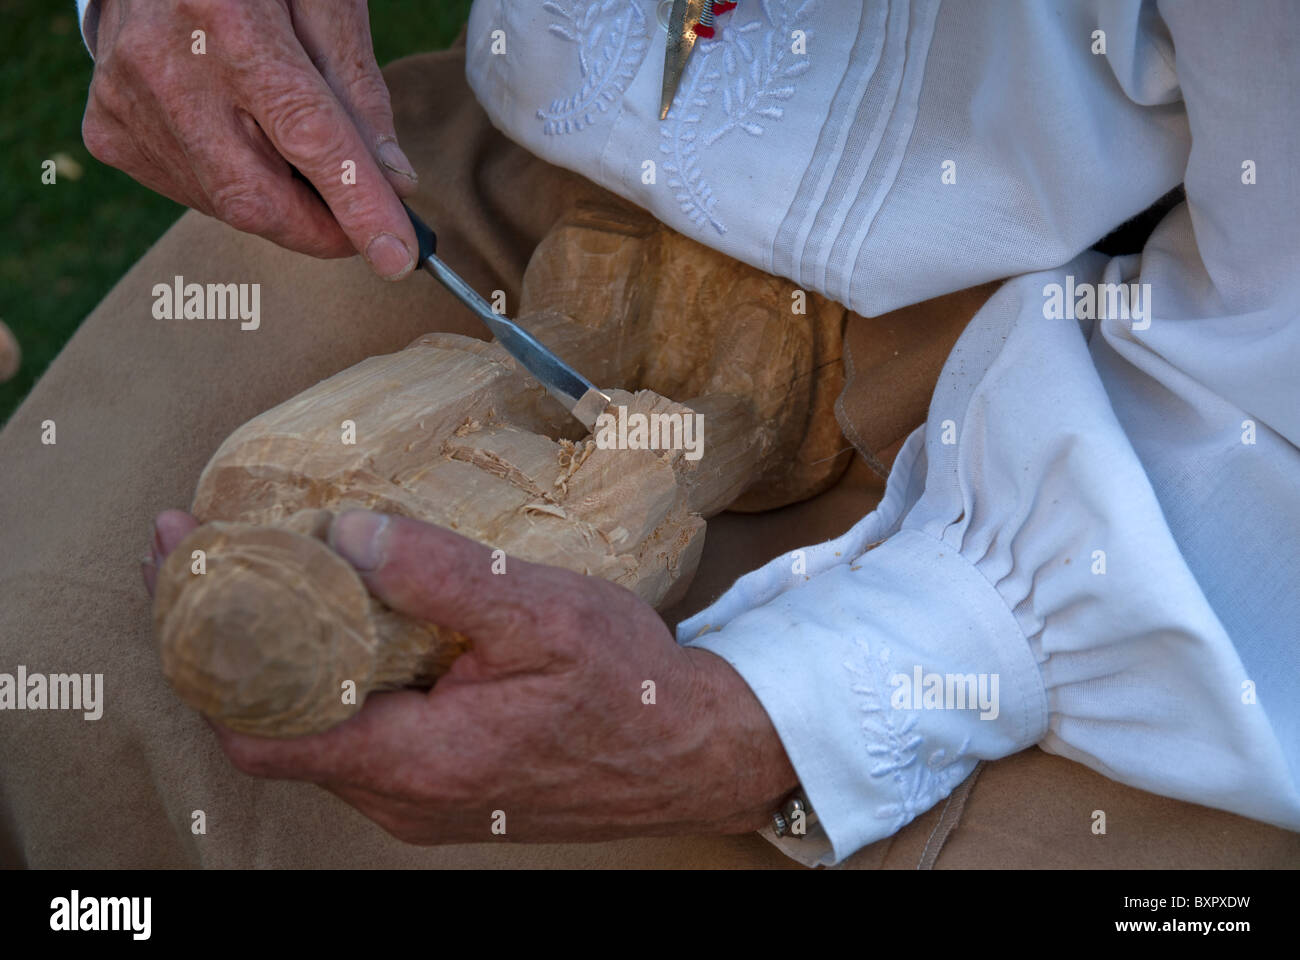 ARTISAN CARVING THE WOOD, TO MAKE A LITTLE SCULPT - Stock Image